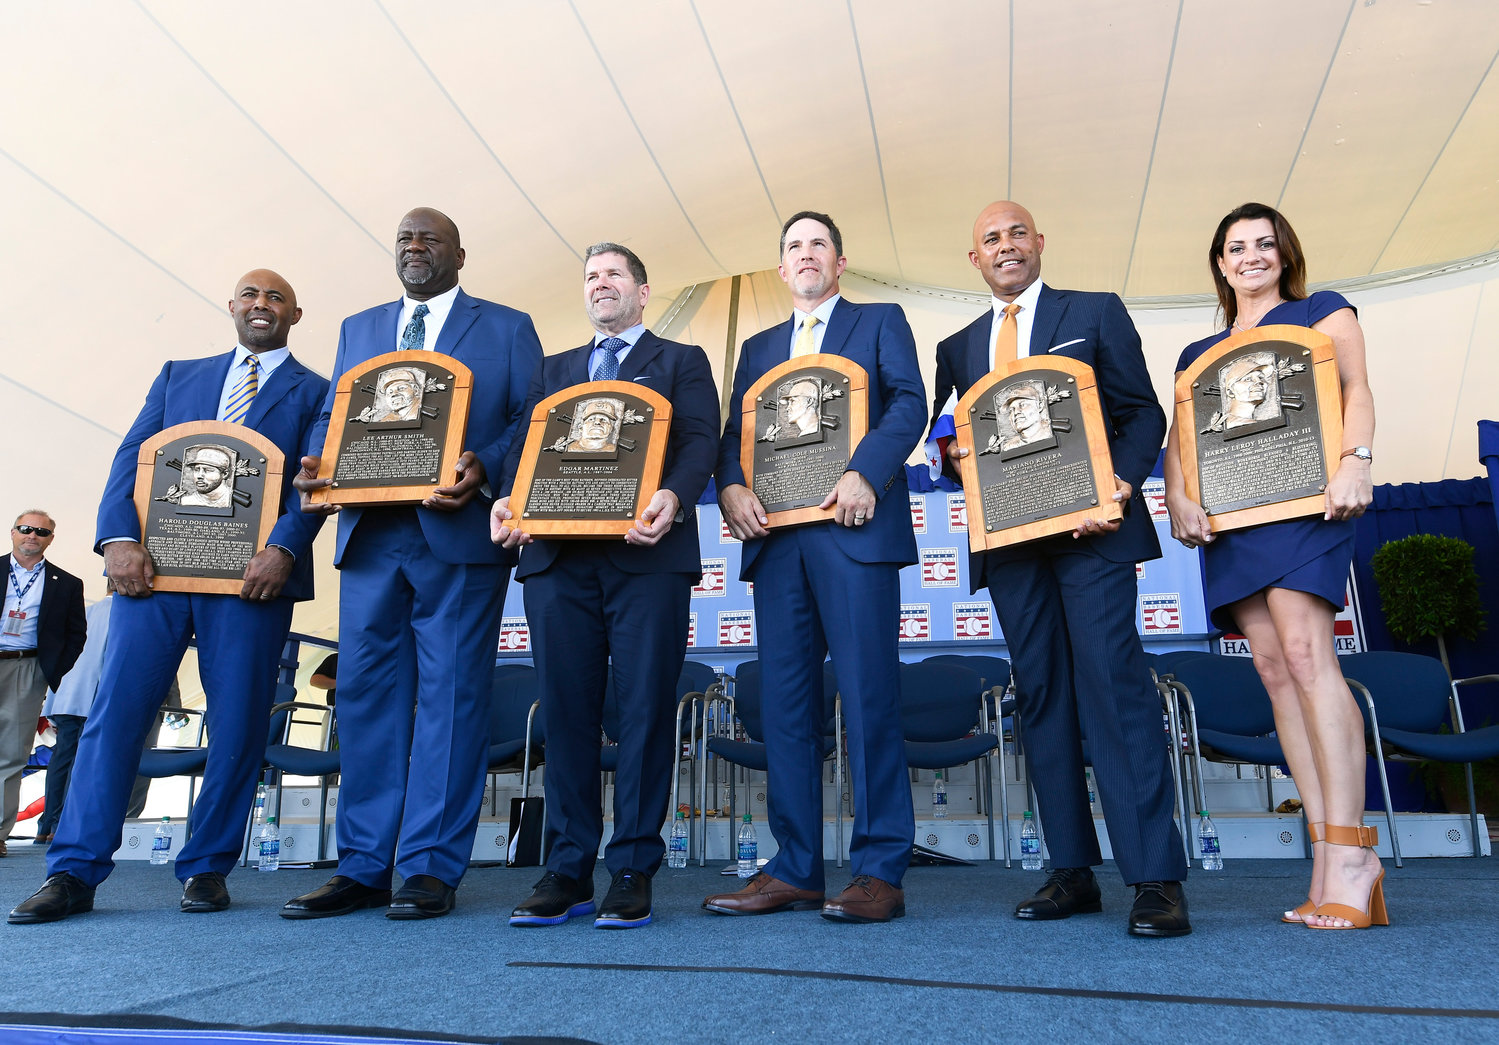 HALL OF FAME LINEUP — National Baseball Hall of Fame inductees, from left, Harold Baines, Lee Smith, Edgar Martinez, Mike Mussina, Mariano Rivera are joined on the stage by Brandy Halladay, widow of the late Roy Halladay, following the induction ceremony on Sunday, July 21 at the Clark Sports Center in Cooperstown.